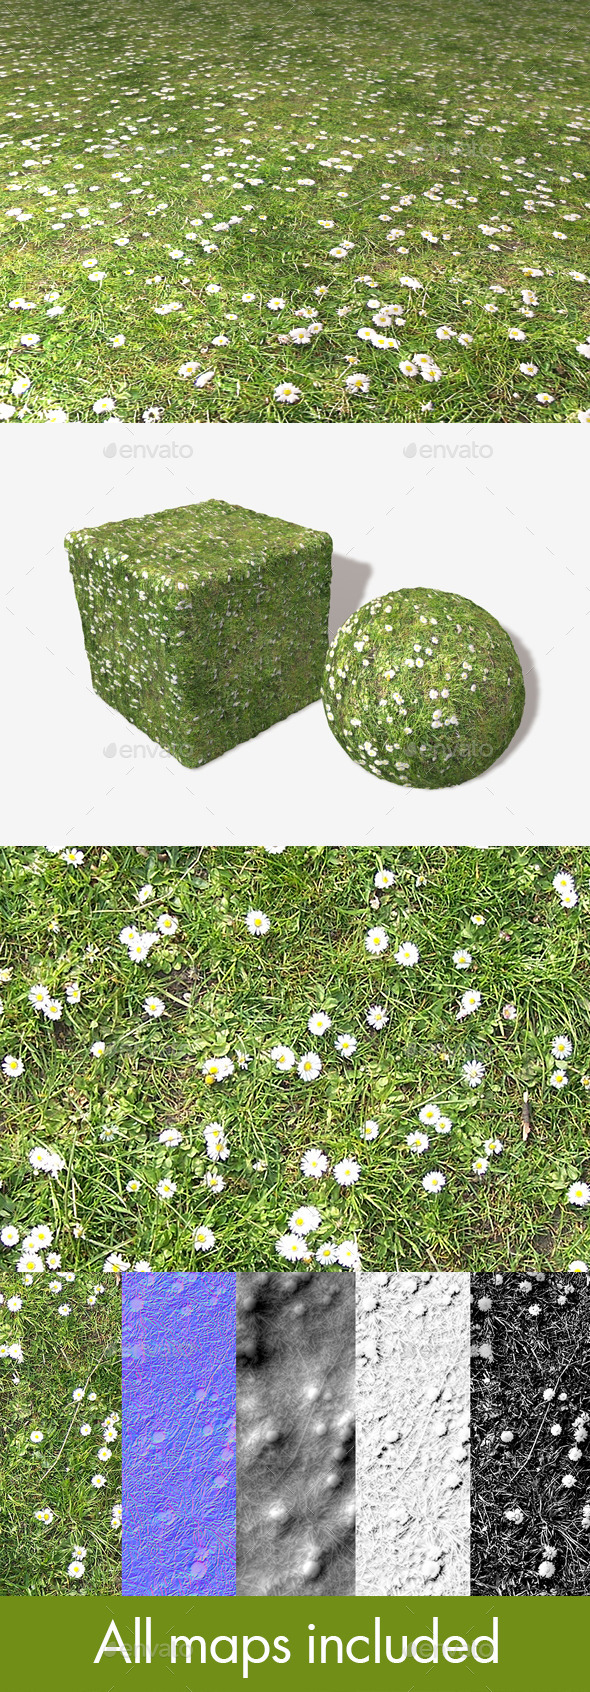 Daisies and Grass Seamless Texture